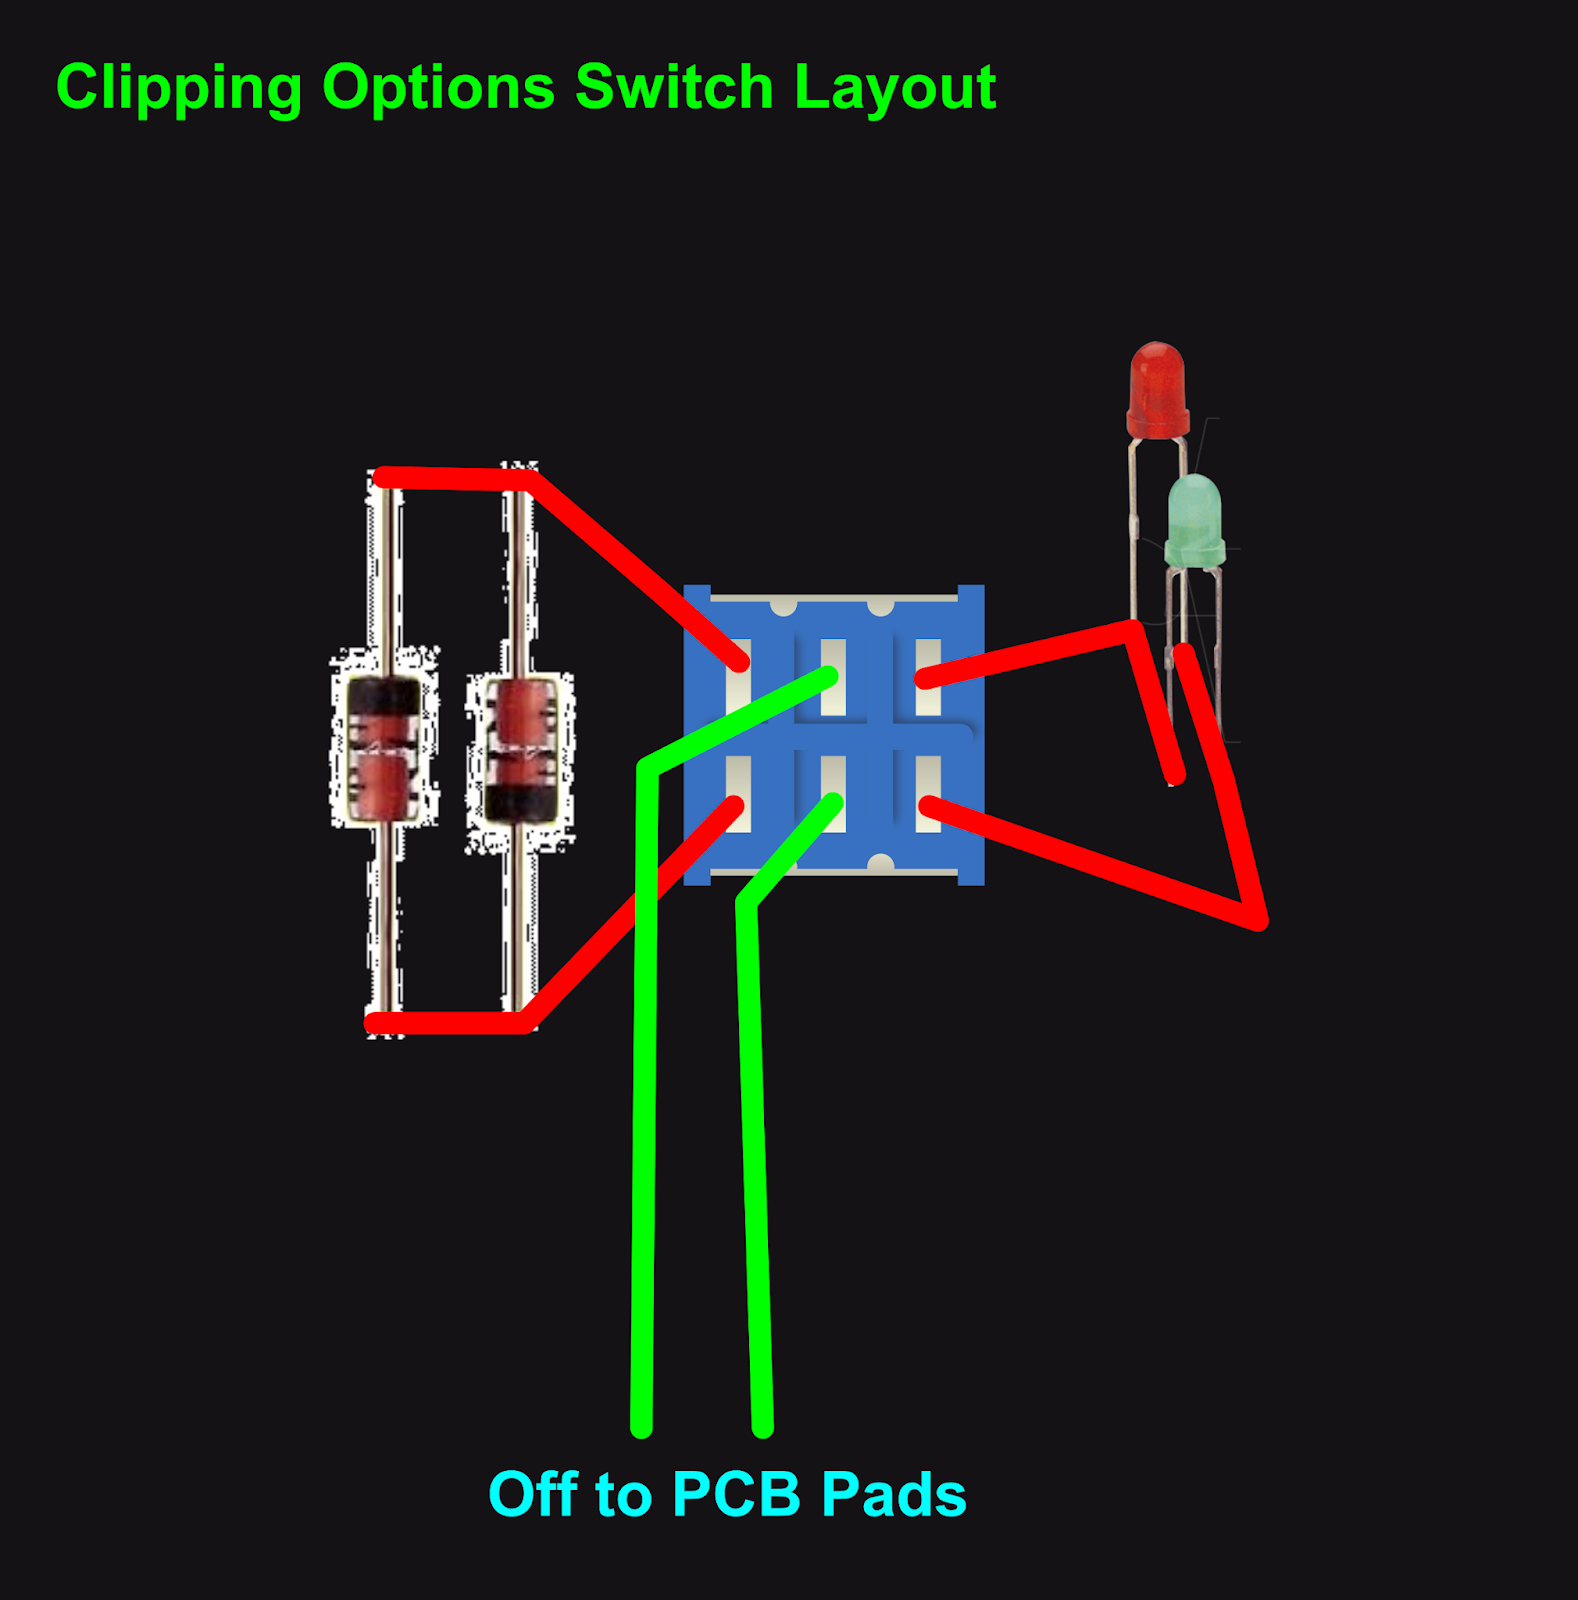 boss fs 6 wiring diagram pepers' pedals: pepers' pedals hm-too many clones. build ... boss cs 3 wiring diagram